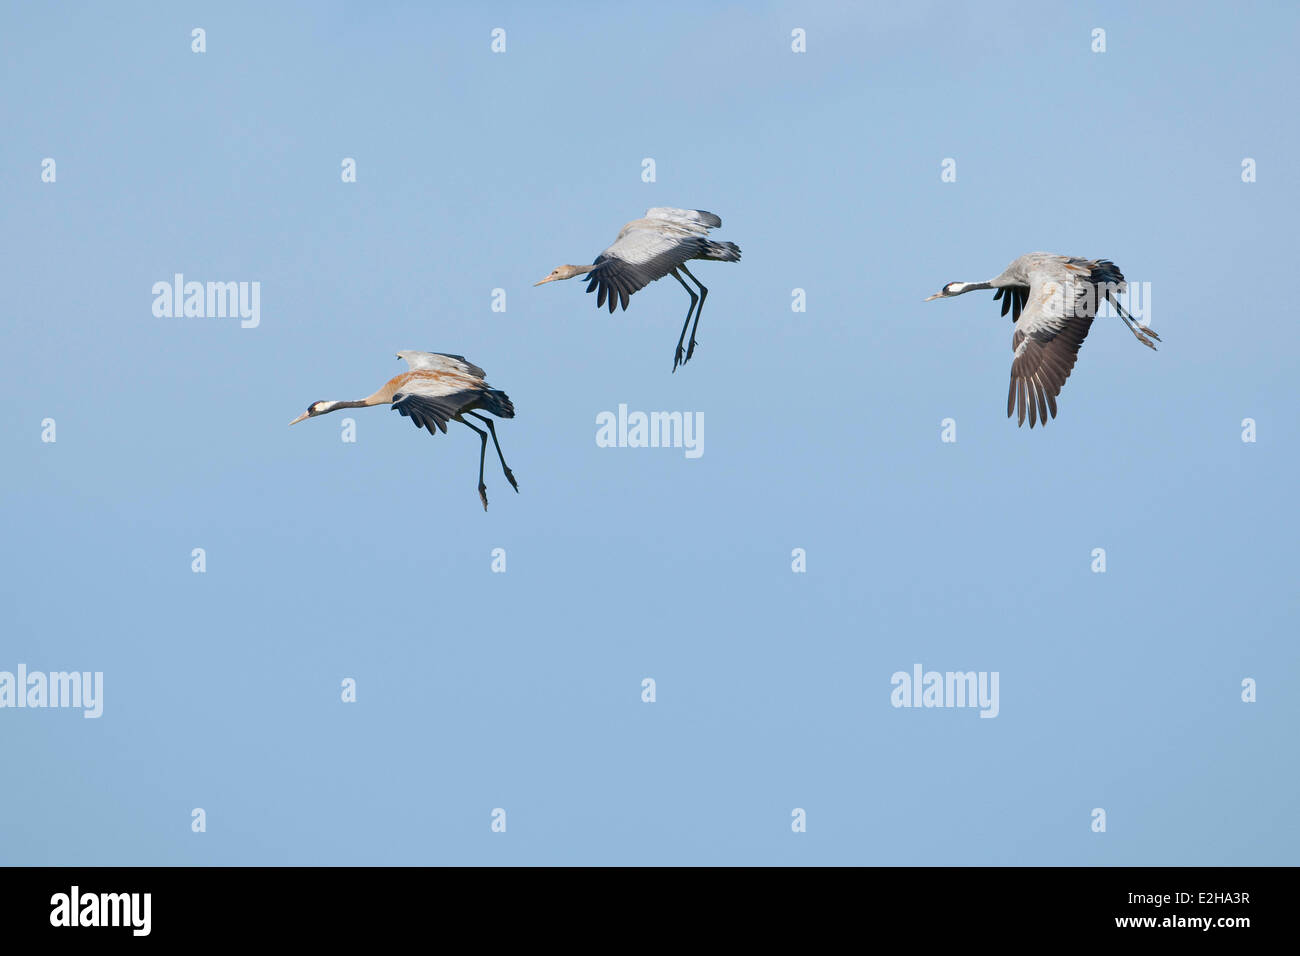 Common Cranes (Grus grus), two adult birds and a young bird, about to land, Mecklenburg-Western Pomerania, Germany - Stock Image